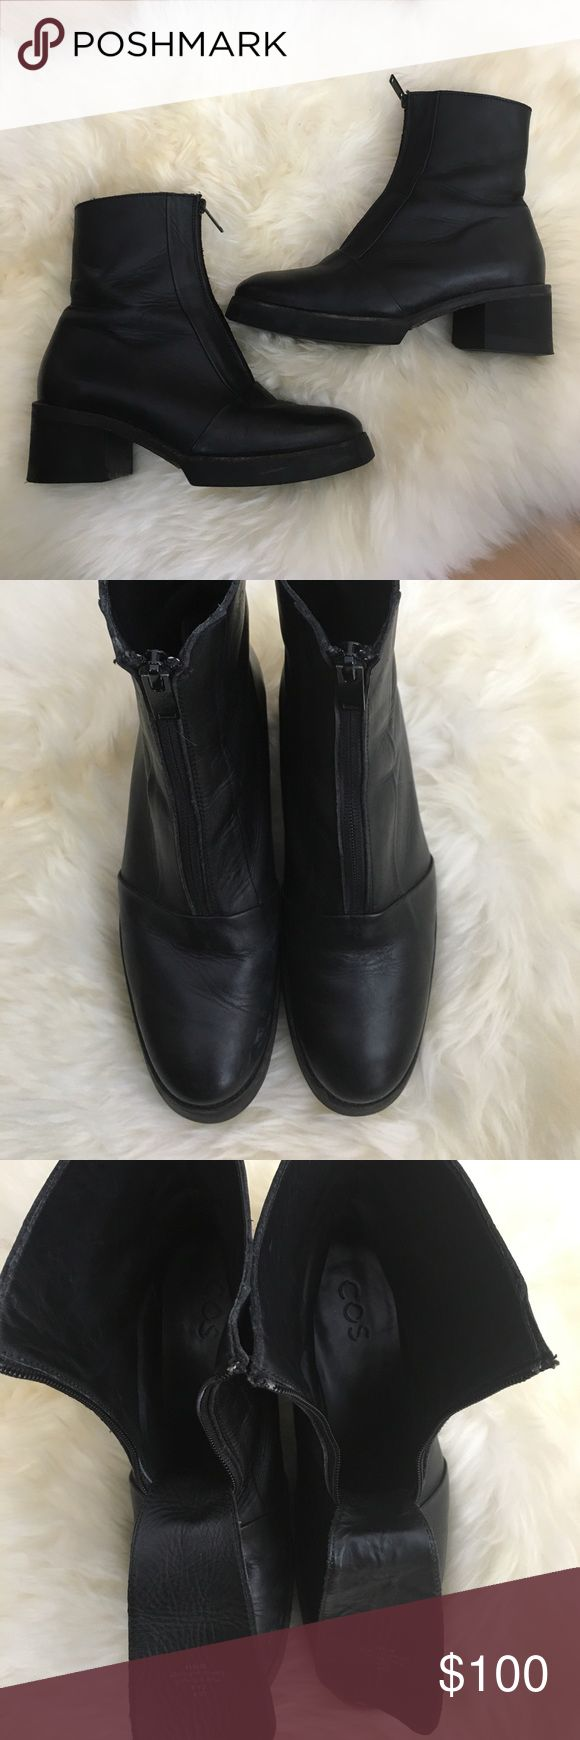 COS Leather Zip Up Moto Combat Boots Size 8 COS Leather Zip Up Moto Combat Boots Size 8. Made in Portugal. Black Leather. Excellent condition. COS Shoes Combat & Moto Boots